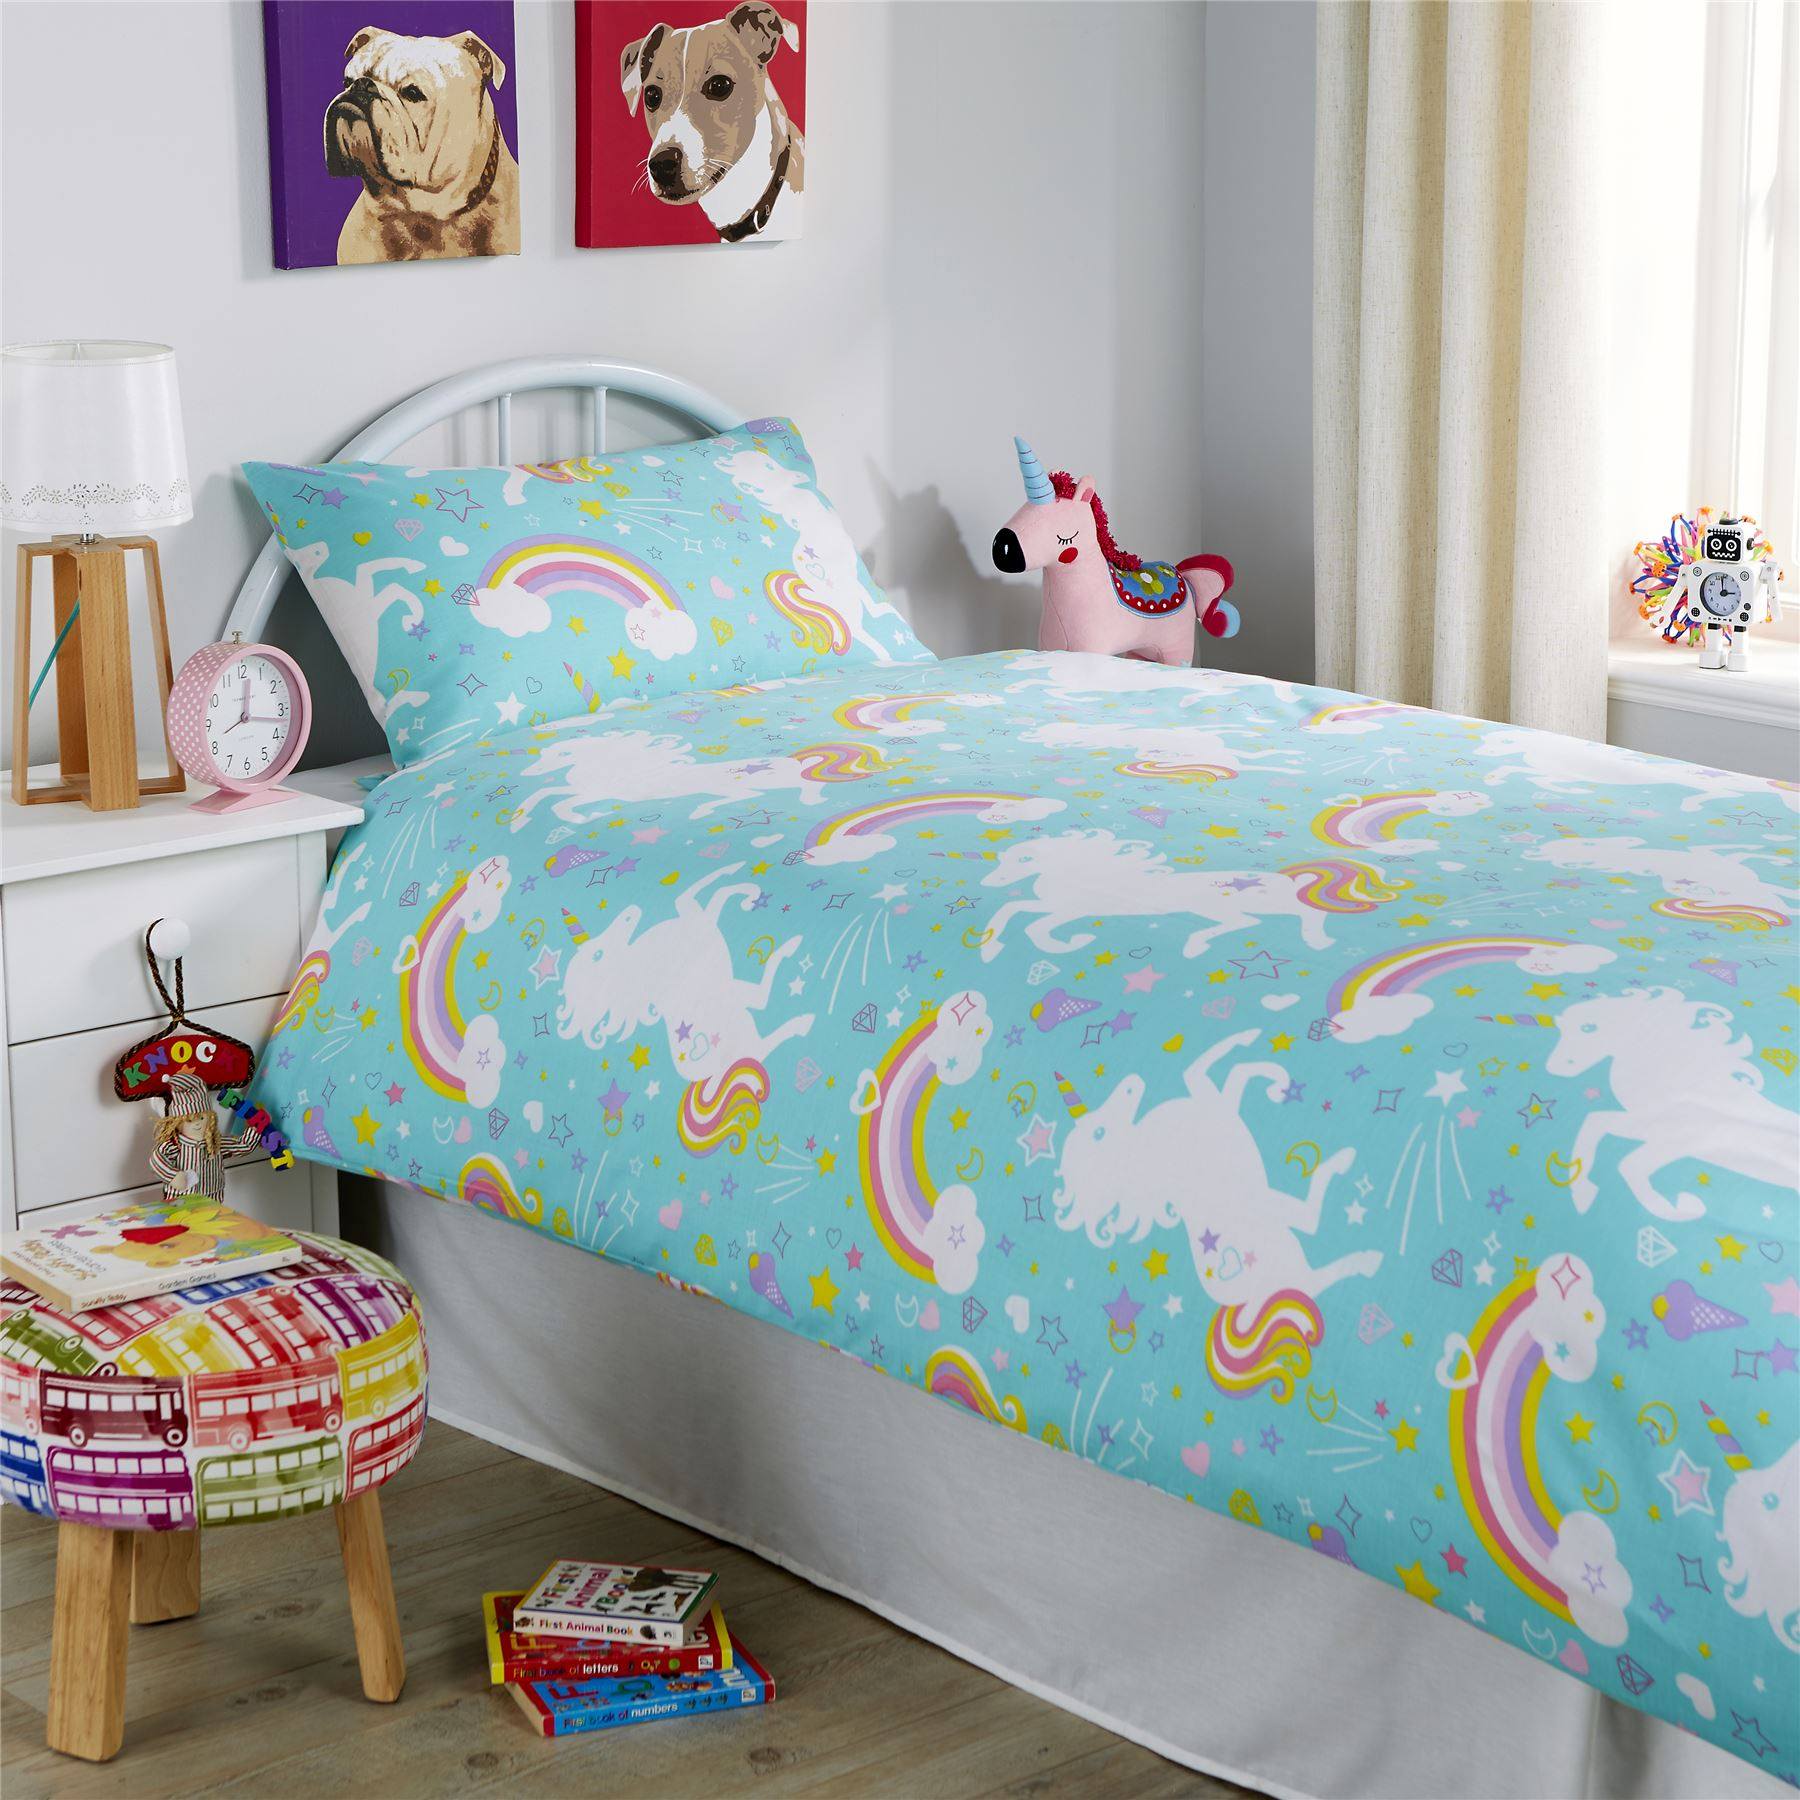 Unicorn Duvet Cover Set Kids Quilt Cover Unicorn Bedding Single Double Duckegg Ebay